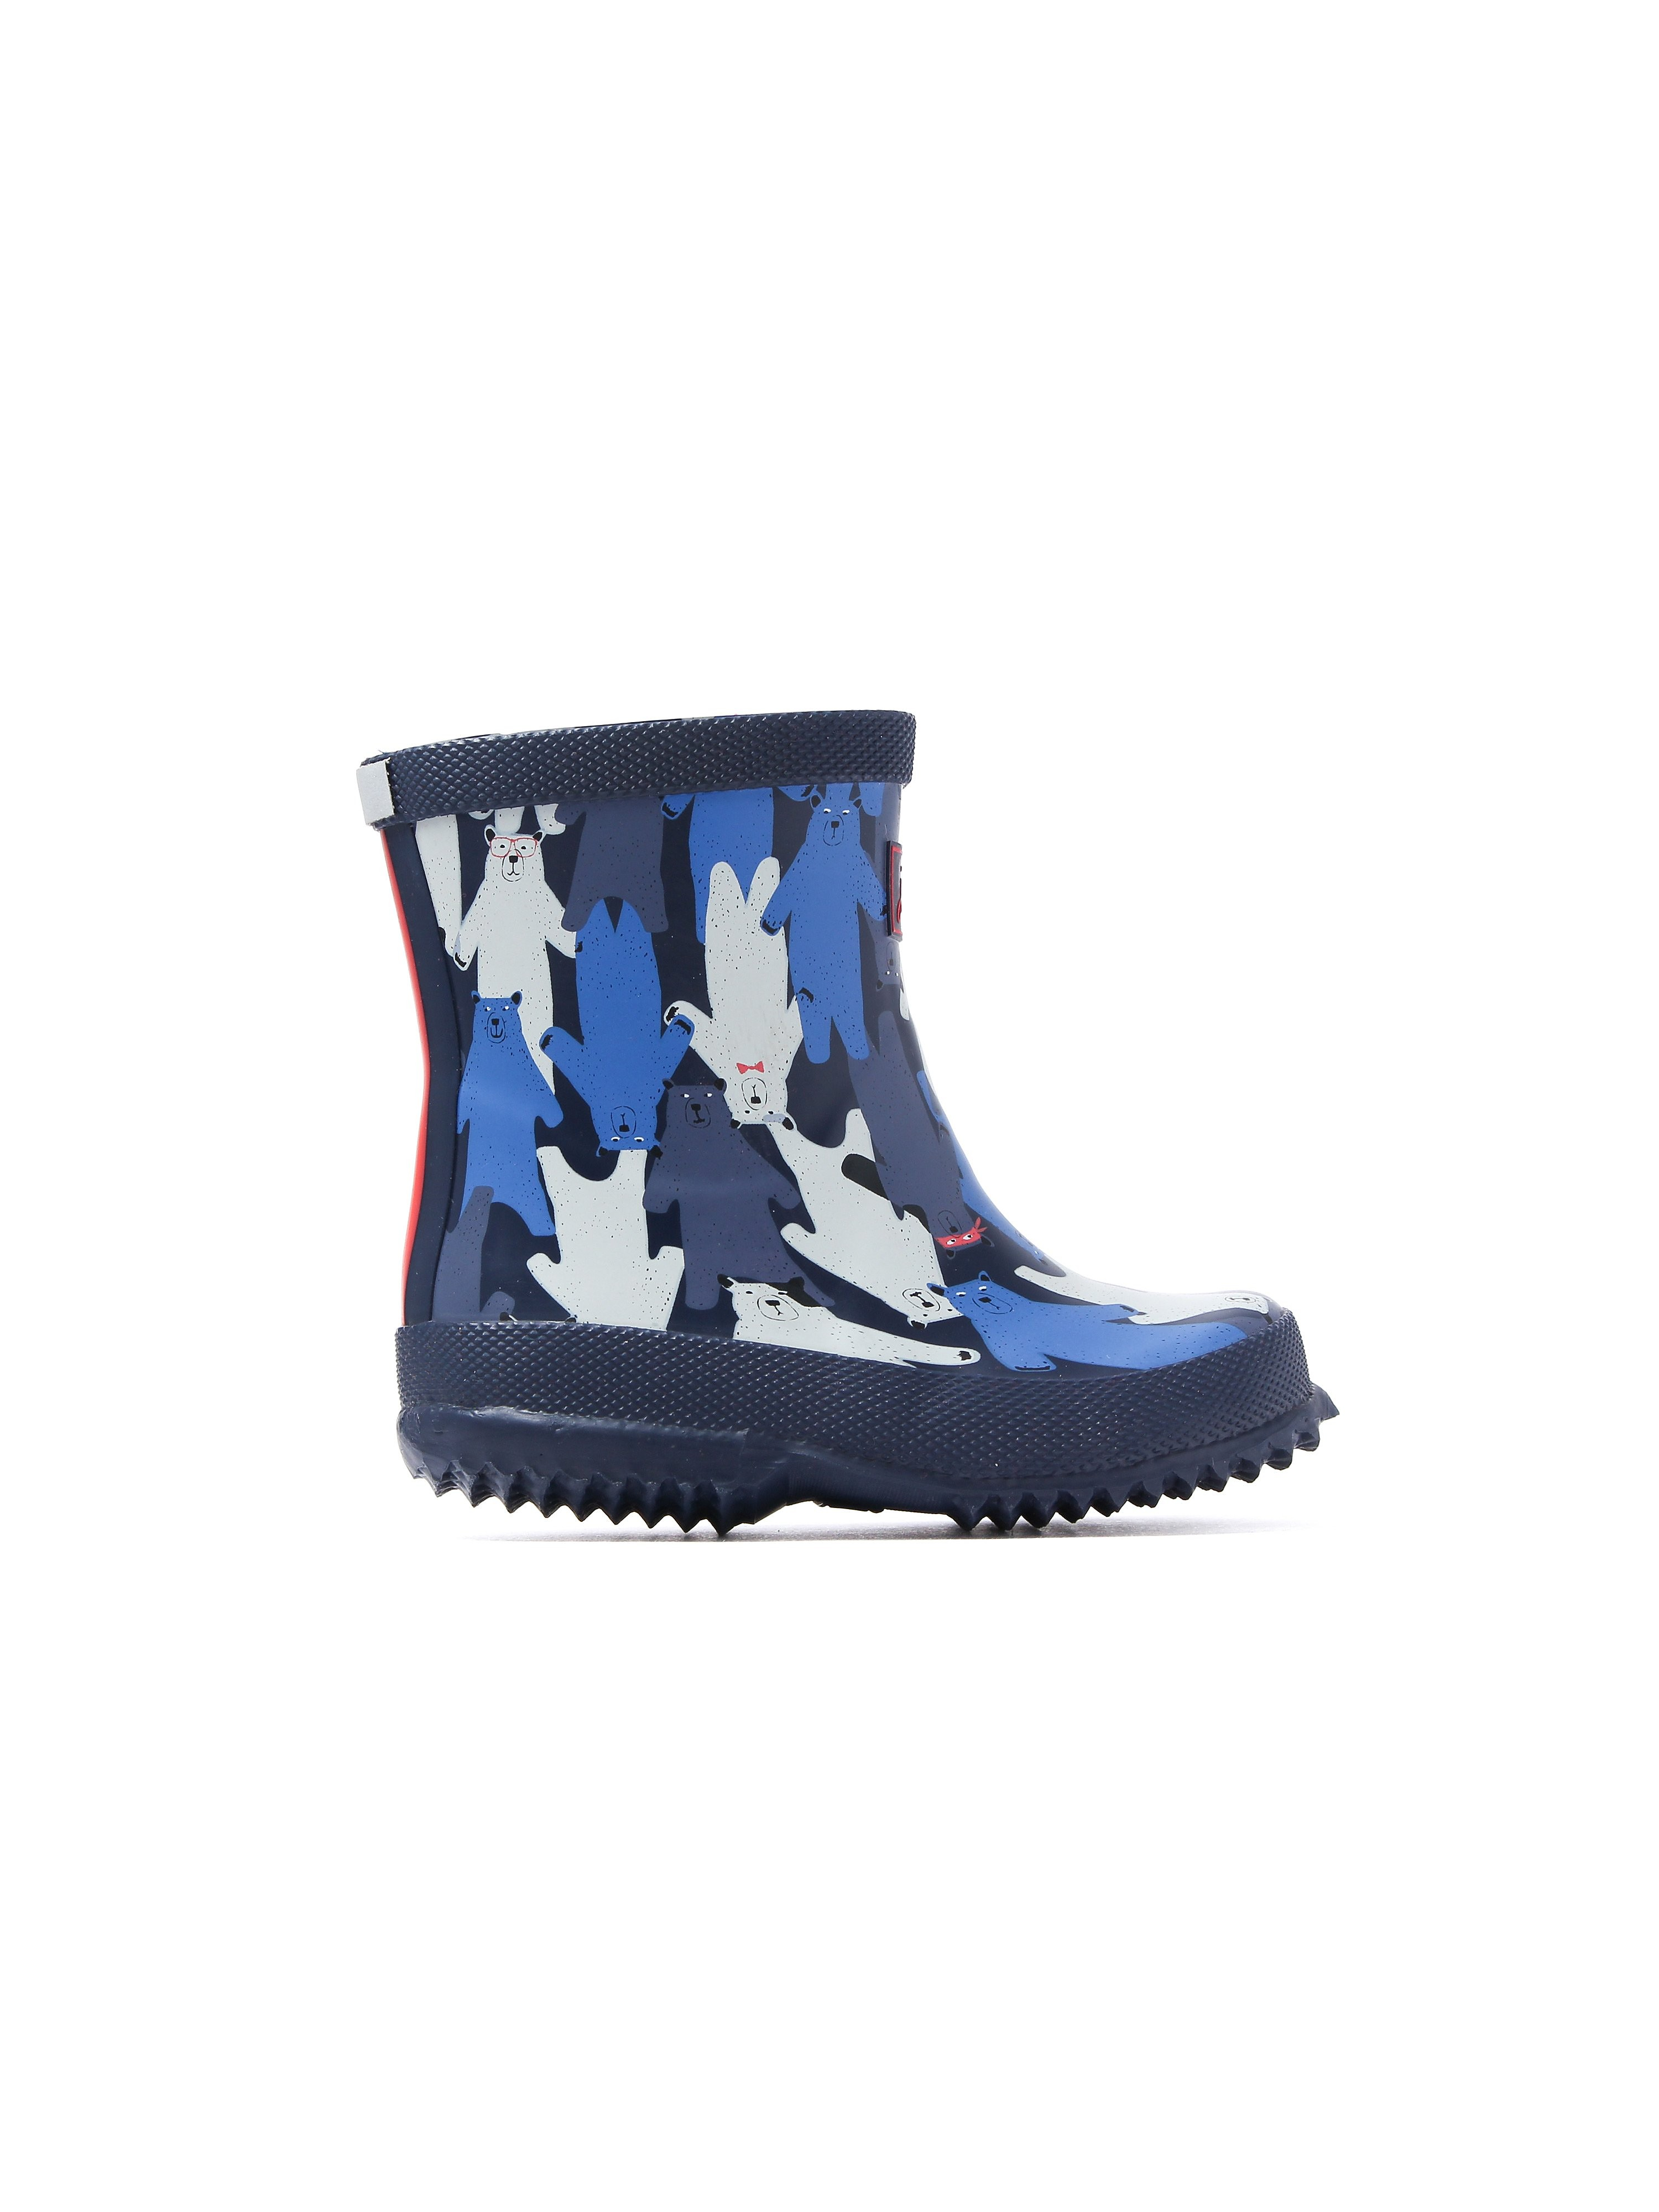 Joules Infant Mulbear Navy Printed Rubber Wellington Boots